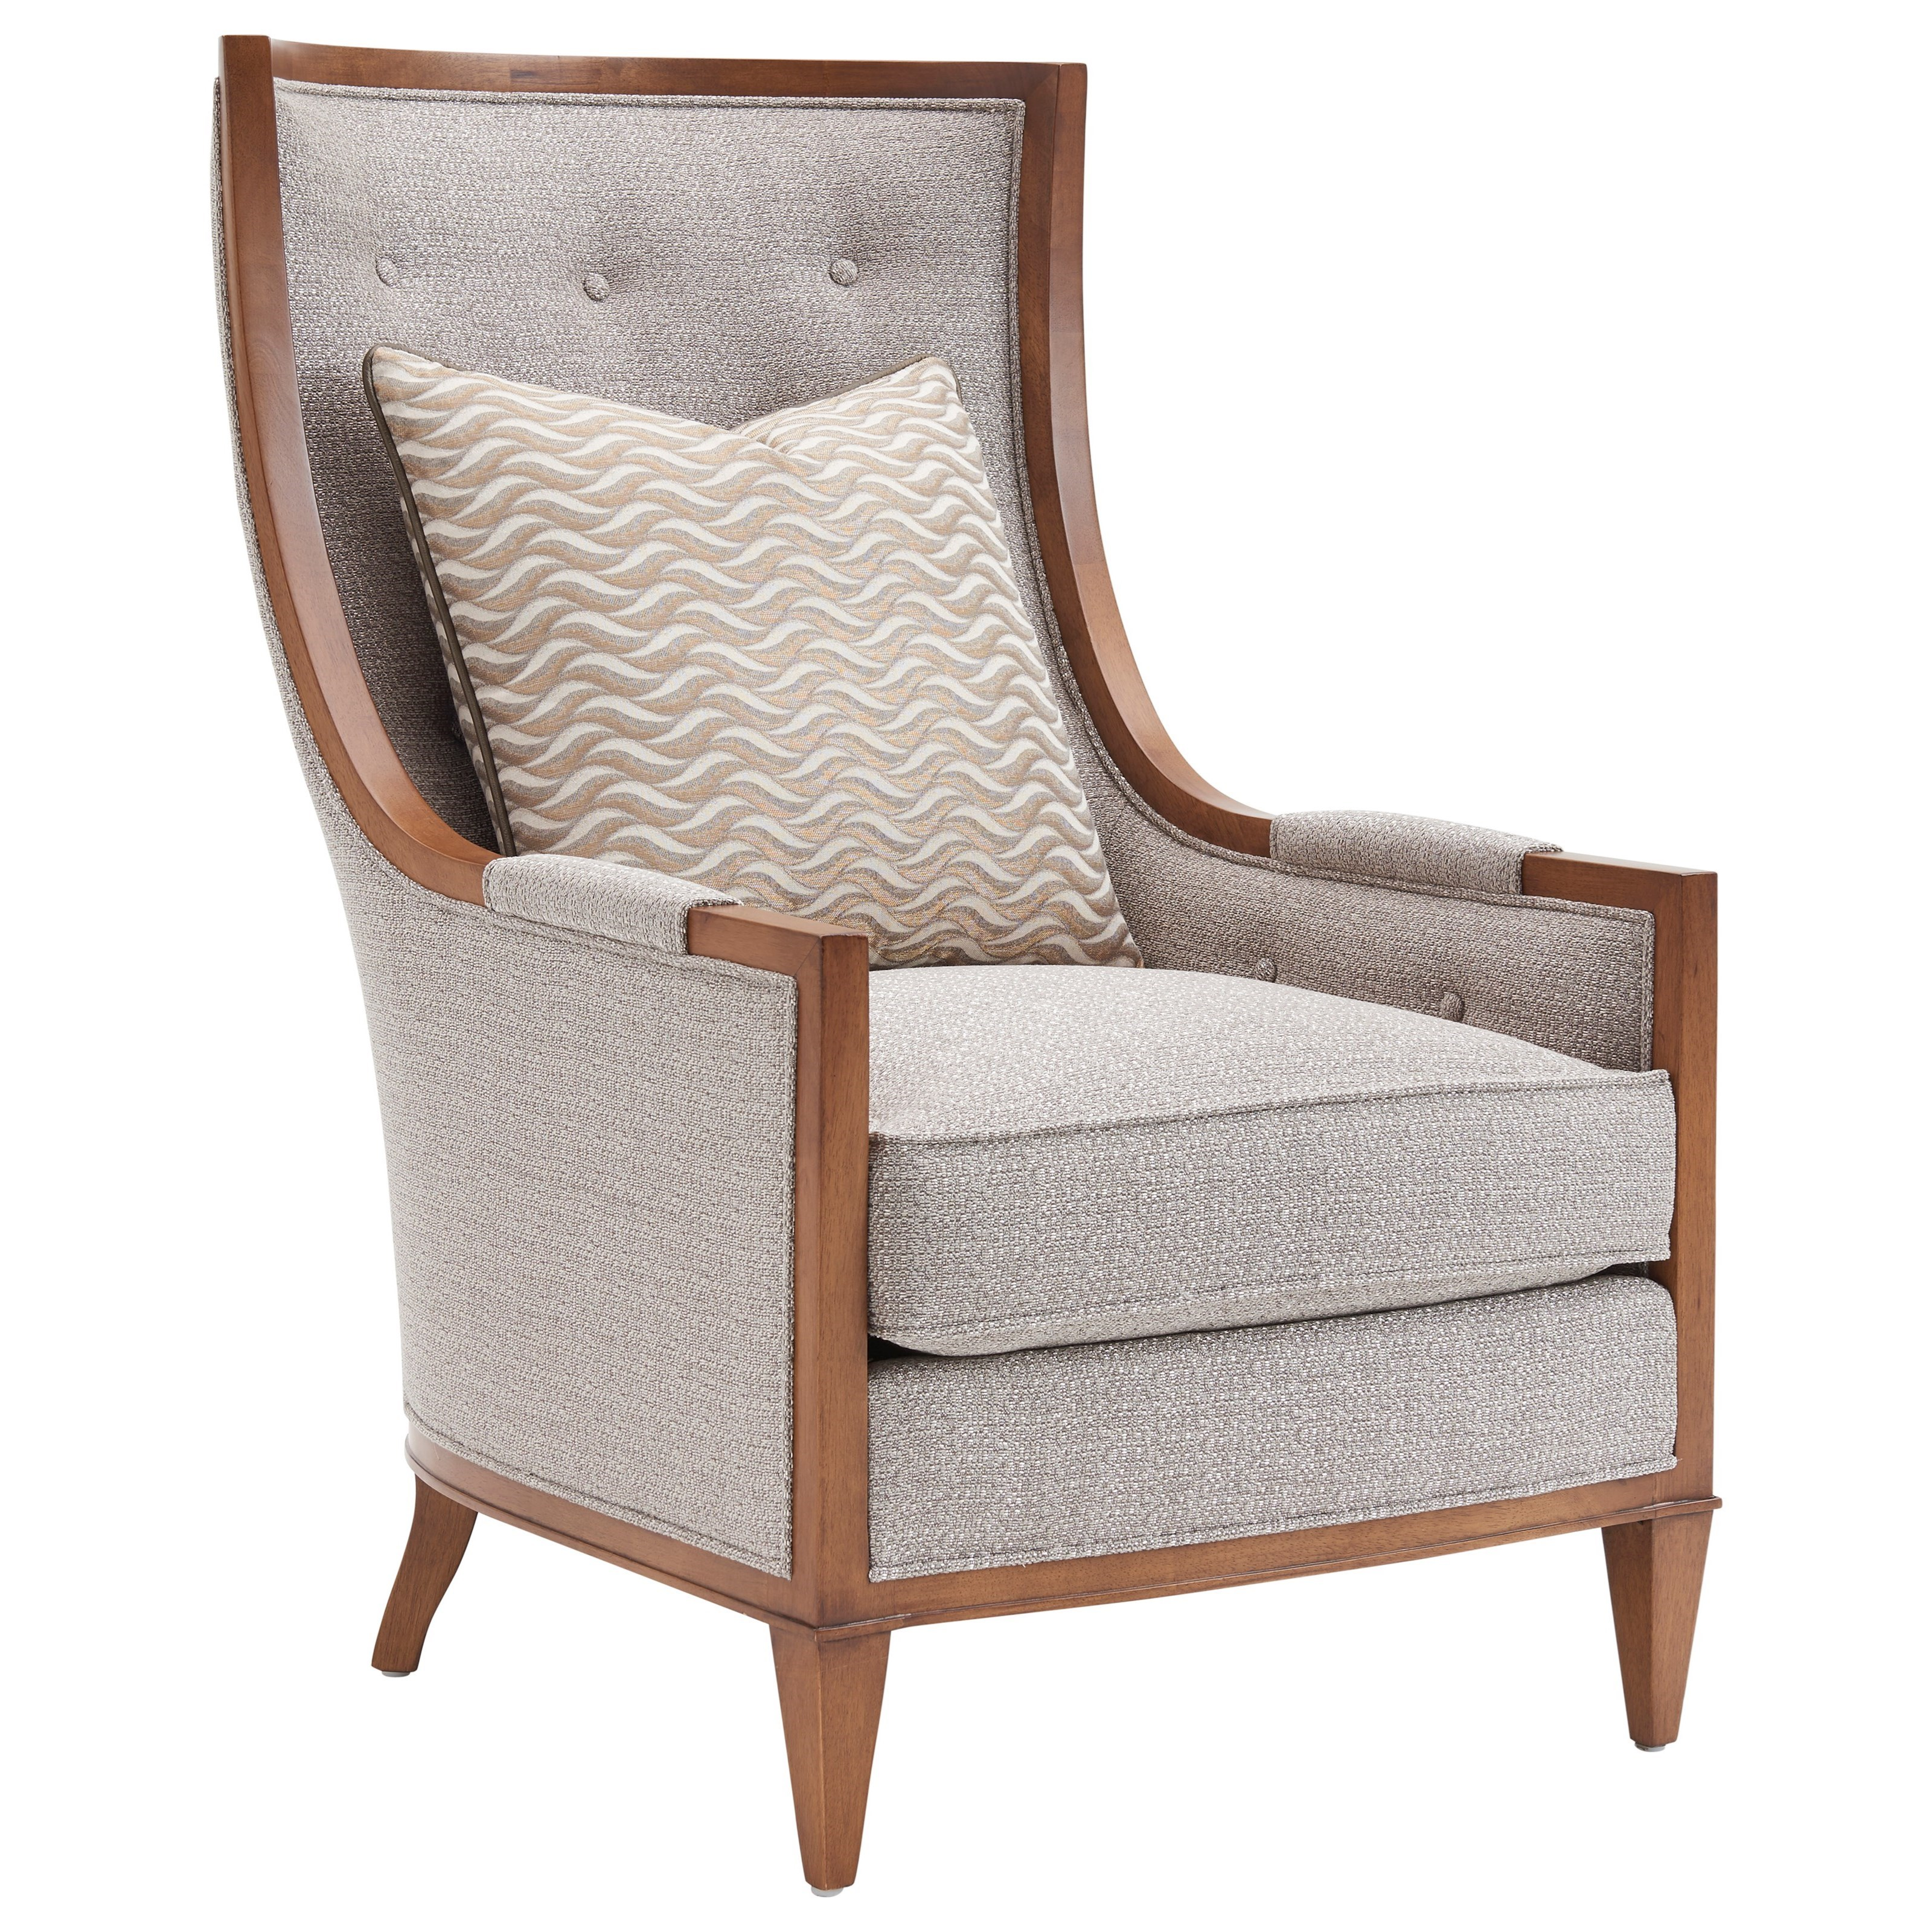 Tower Place Greenwood Chair by Lexington at Baer's Furniture